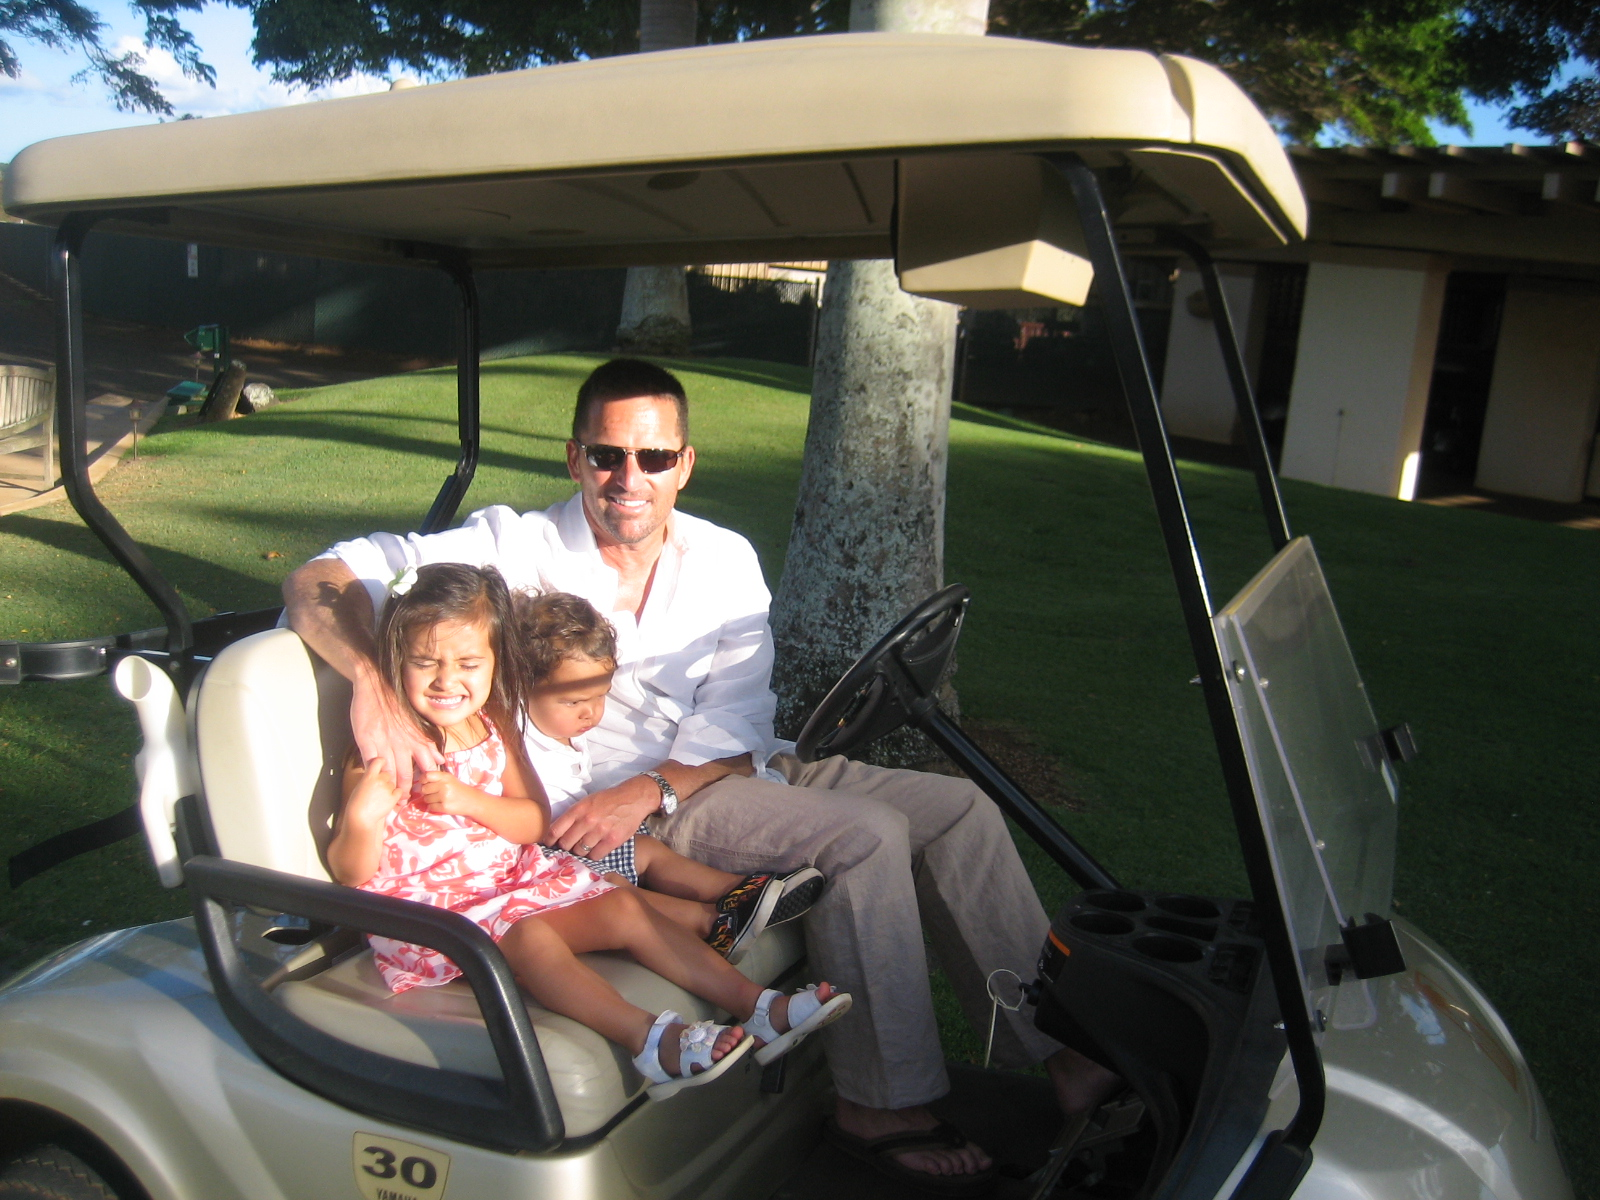 Instagram Message: Look at these cuties in a golf cart back in Jul 2010. Golf Dimples.  Facebook Message: Everyone is posting pictures of the First Day of School and here I am posting this golf cart picture taken in Jul 2010. Golf Dimples.